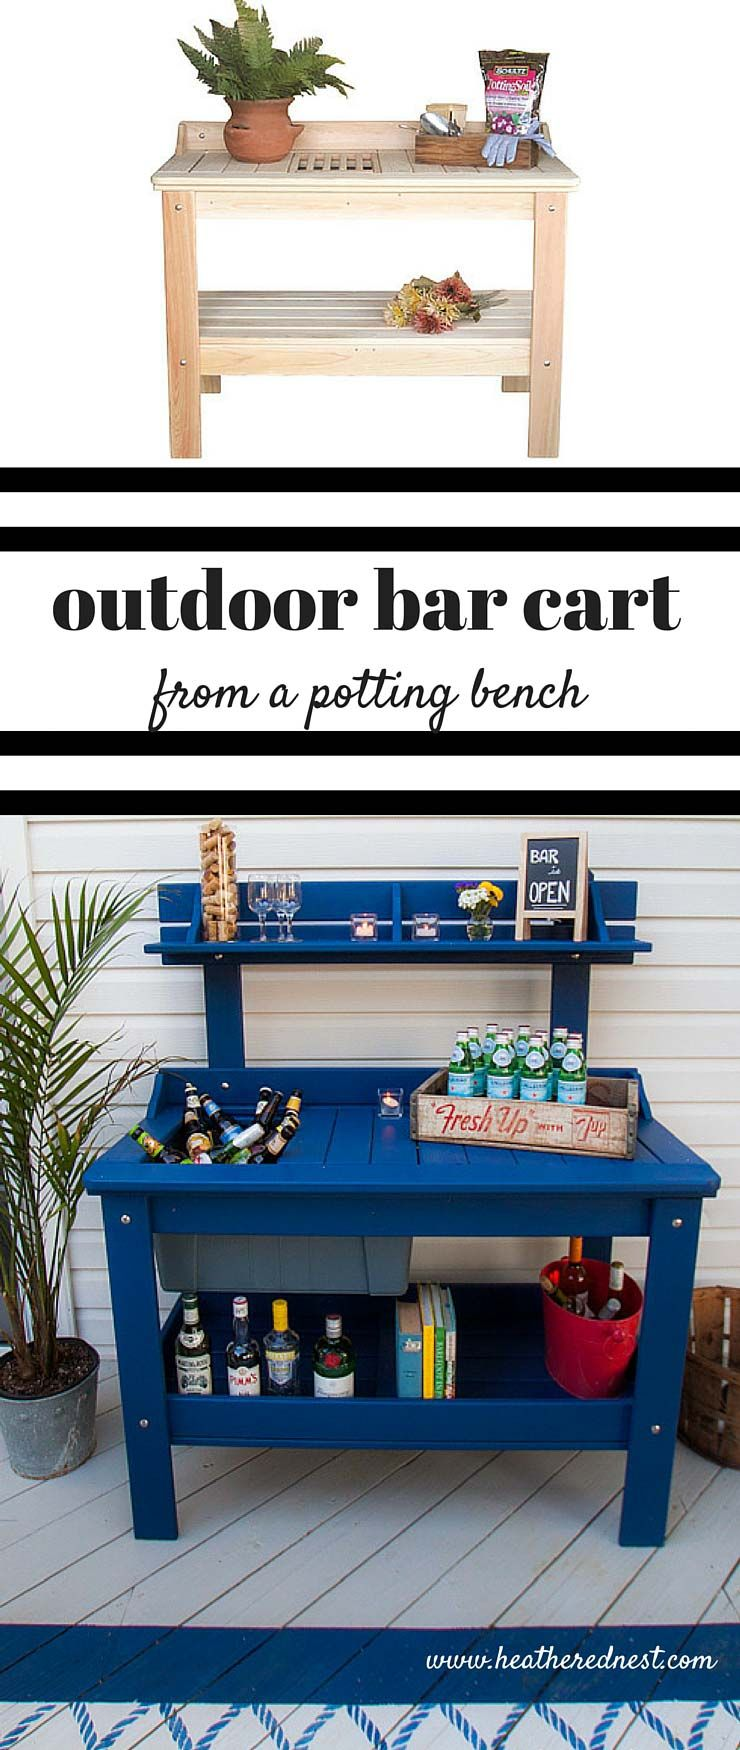 An Outdoor Potting Table Can Be Turned Into The Patio Outdoor Bar Cart!  Check Out